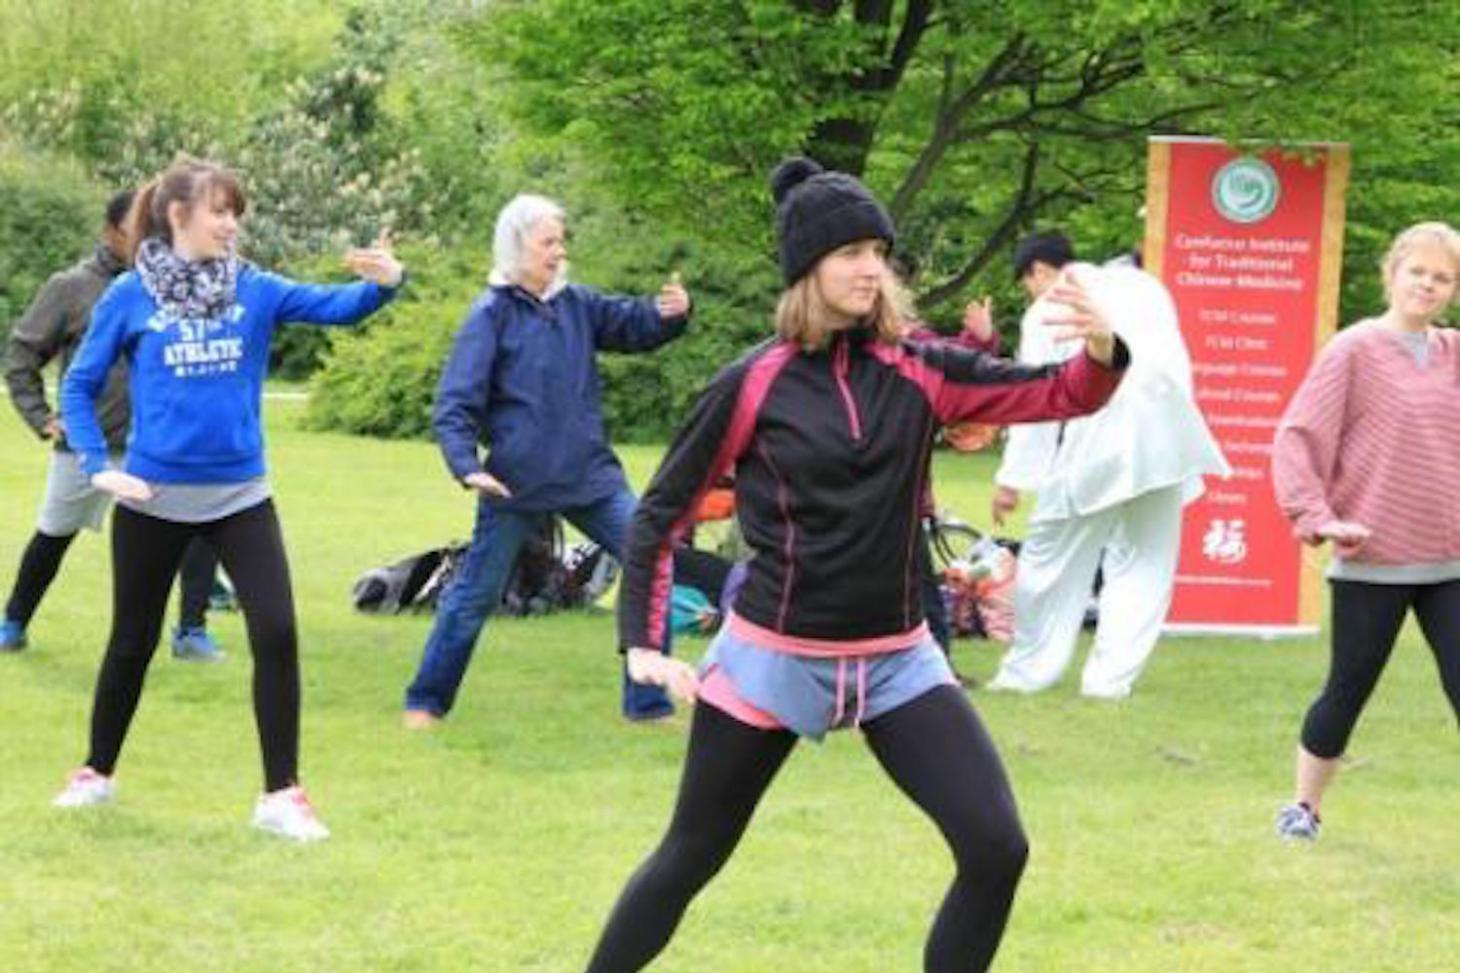 Participants practising taiji attentively